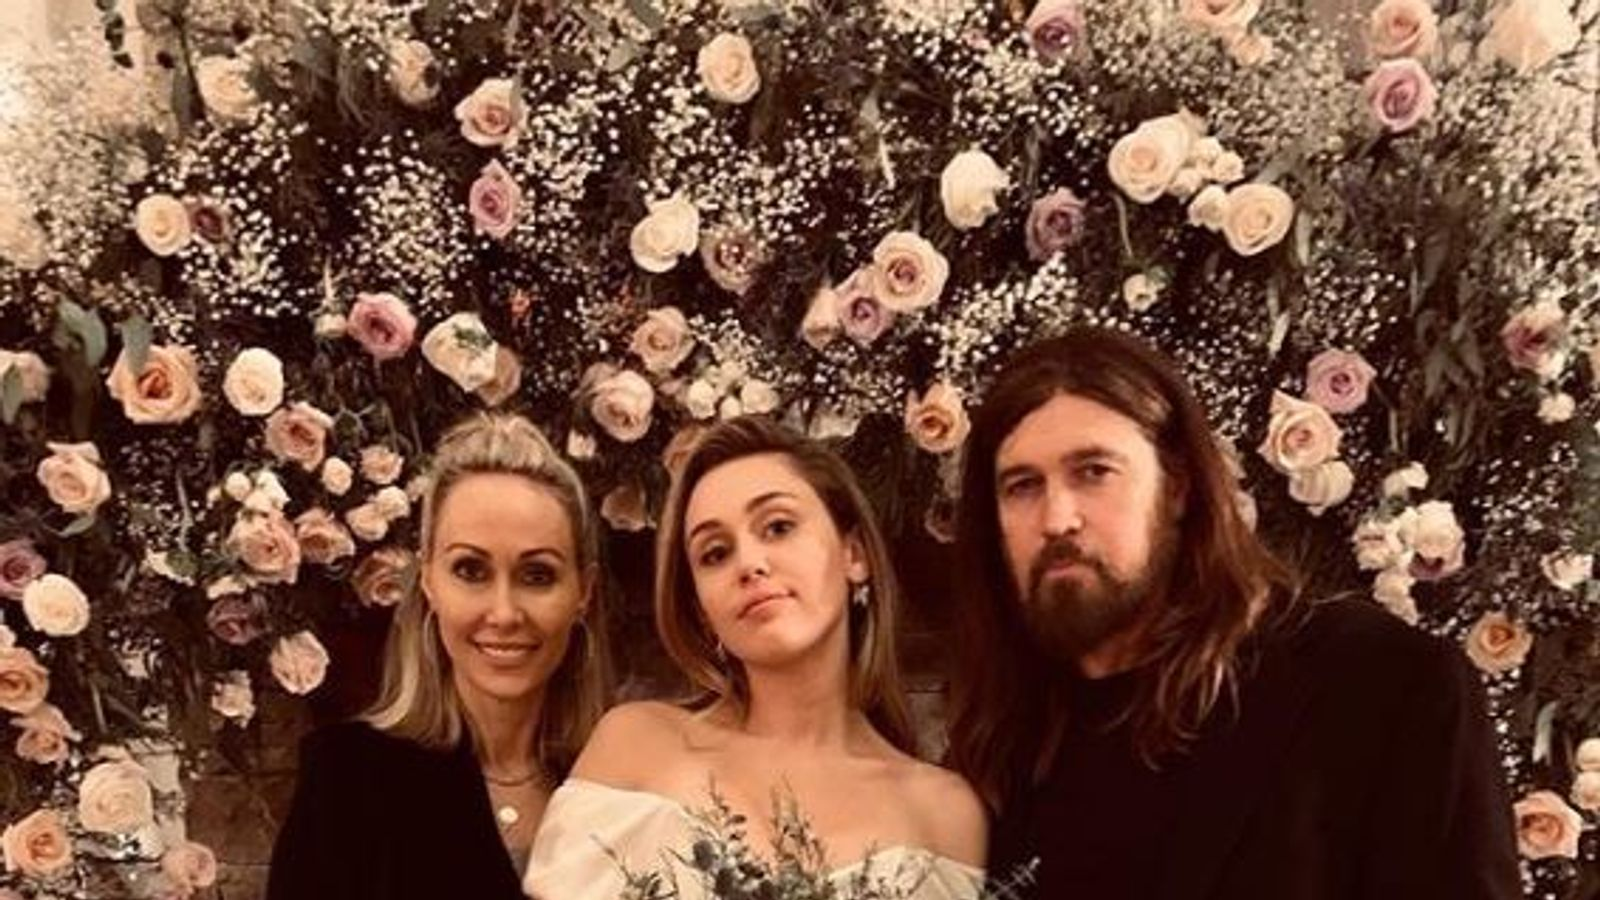 Billy Ray Cyrus congratulates daughter Miley on marriage ...